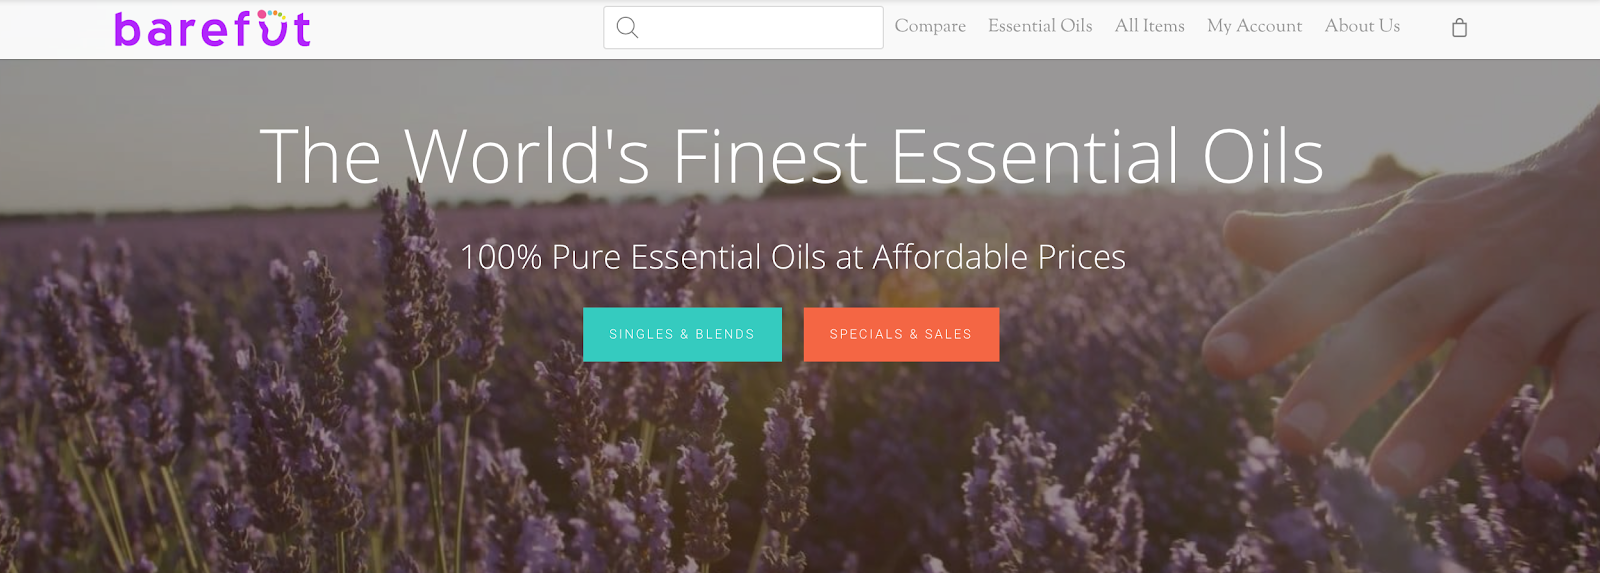 Best Essential Oils Affiliate Programs How to Make Money With Essential Oils Barefut